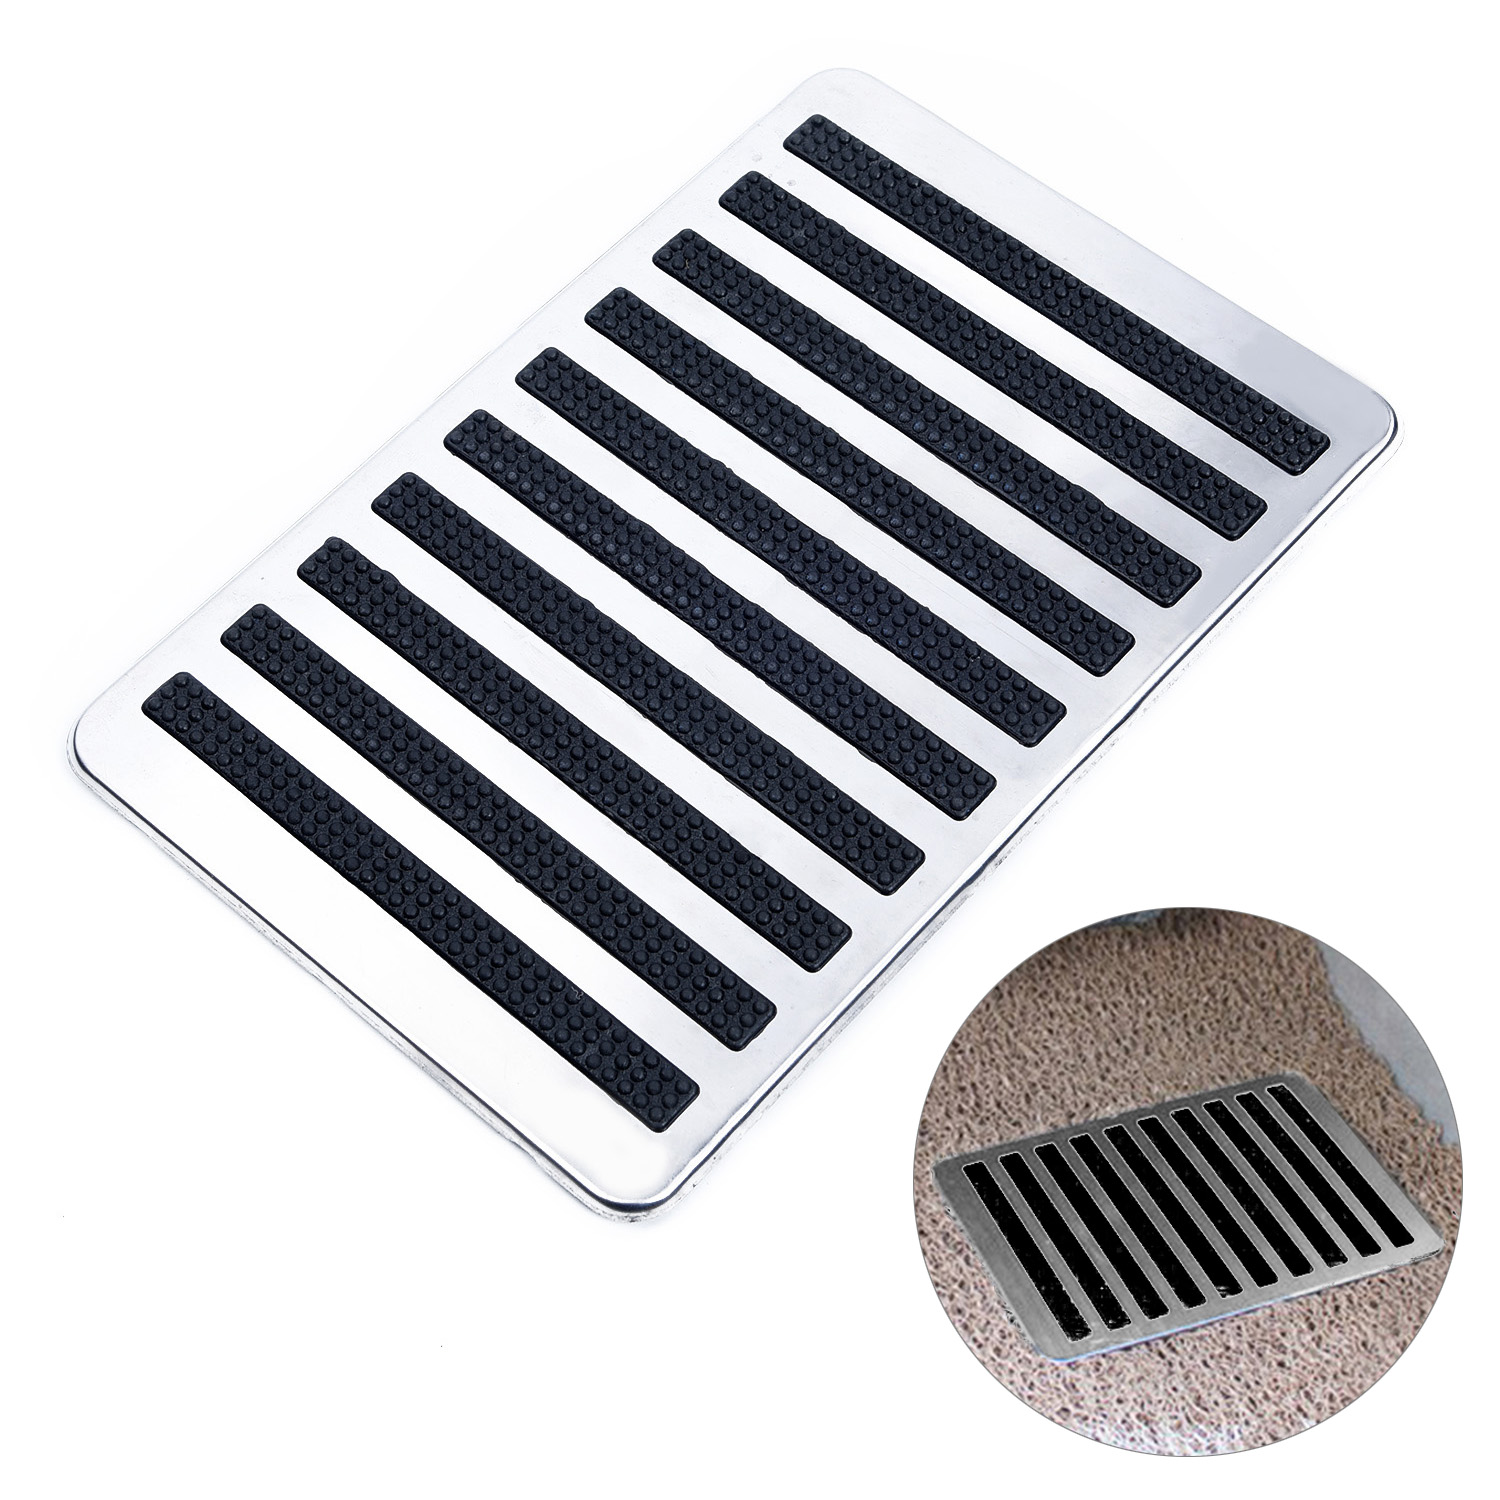 Steel Plate Carpet Stainless Universal Driver Car Side Auto Interior Floor Mat Patch Foot Heel Pedal